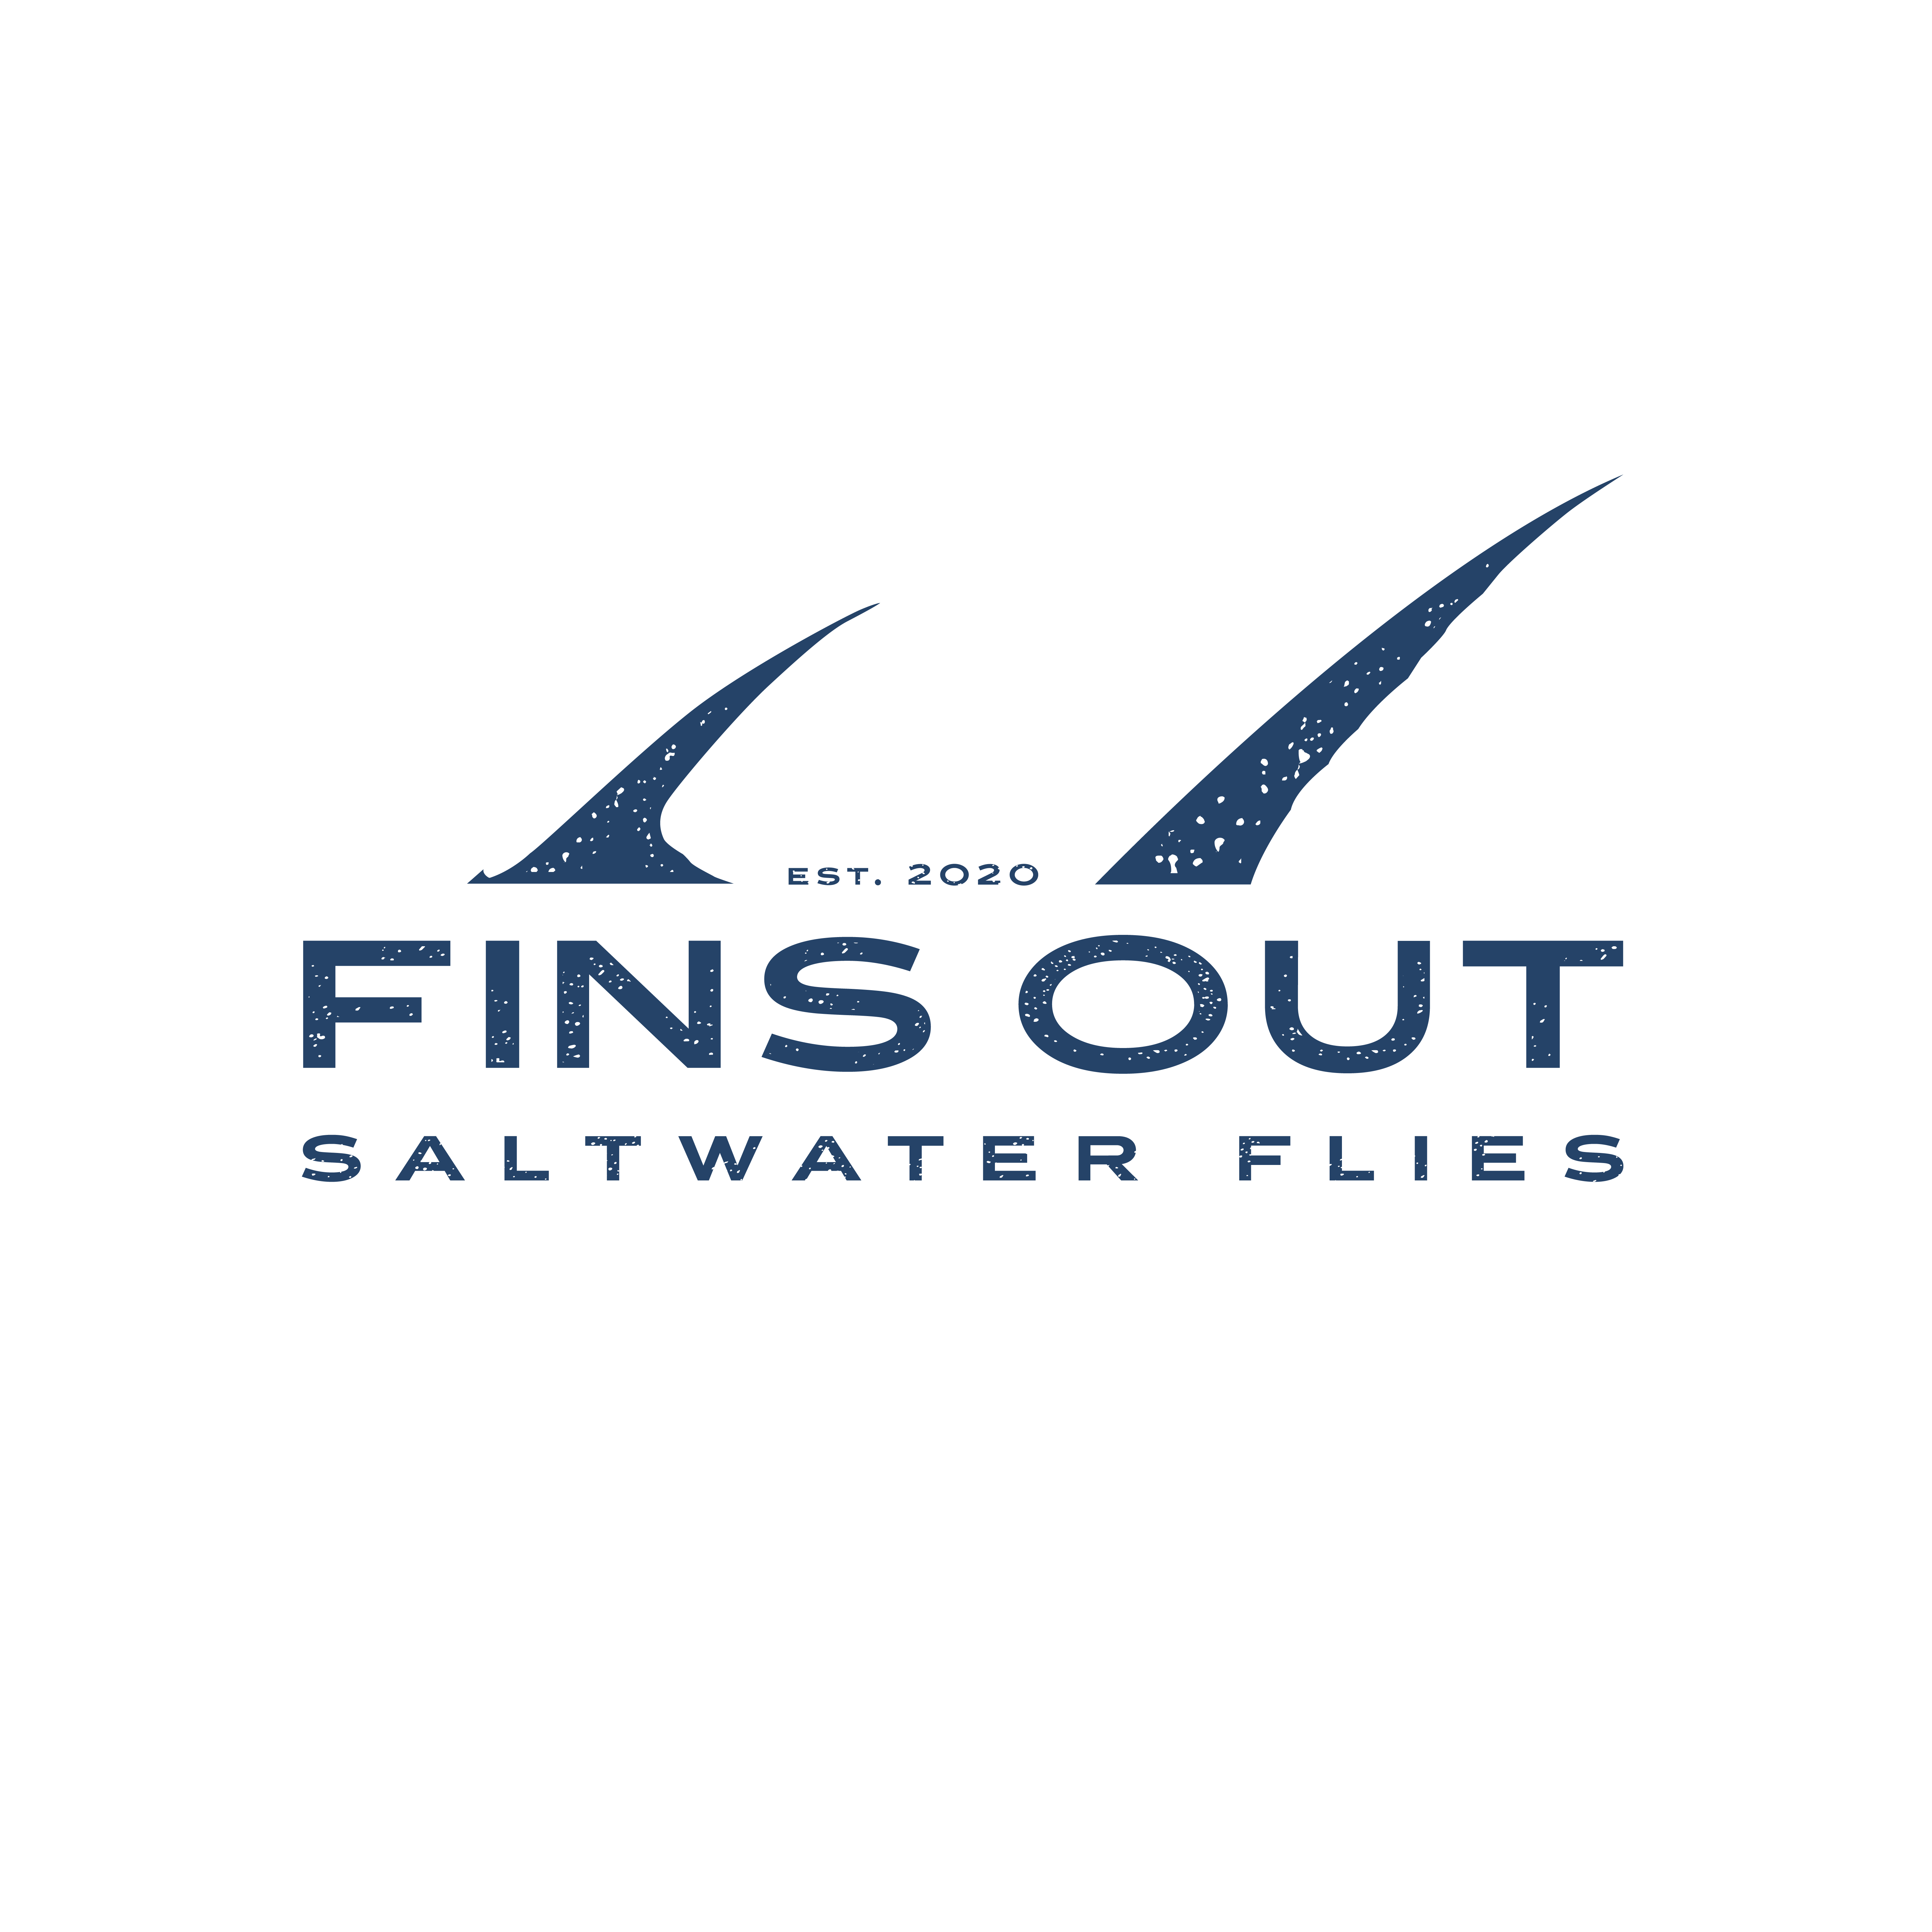 Design a logo for a saltwater fly fishing website